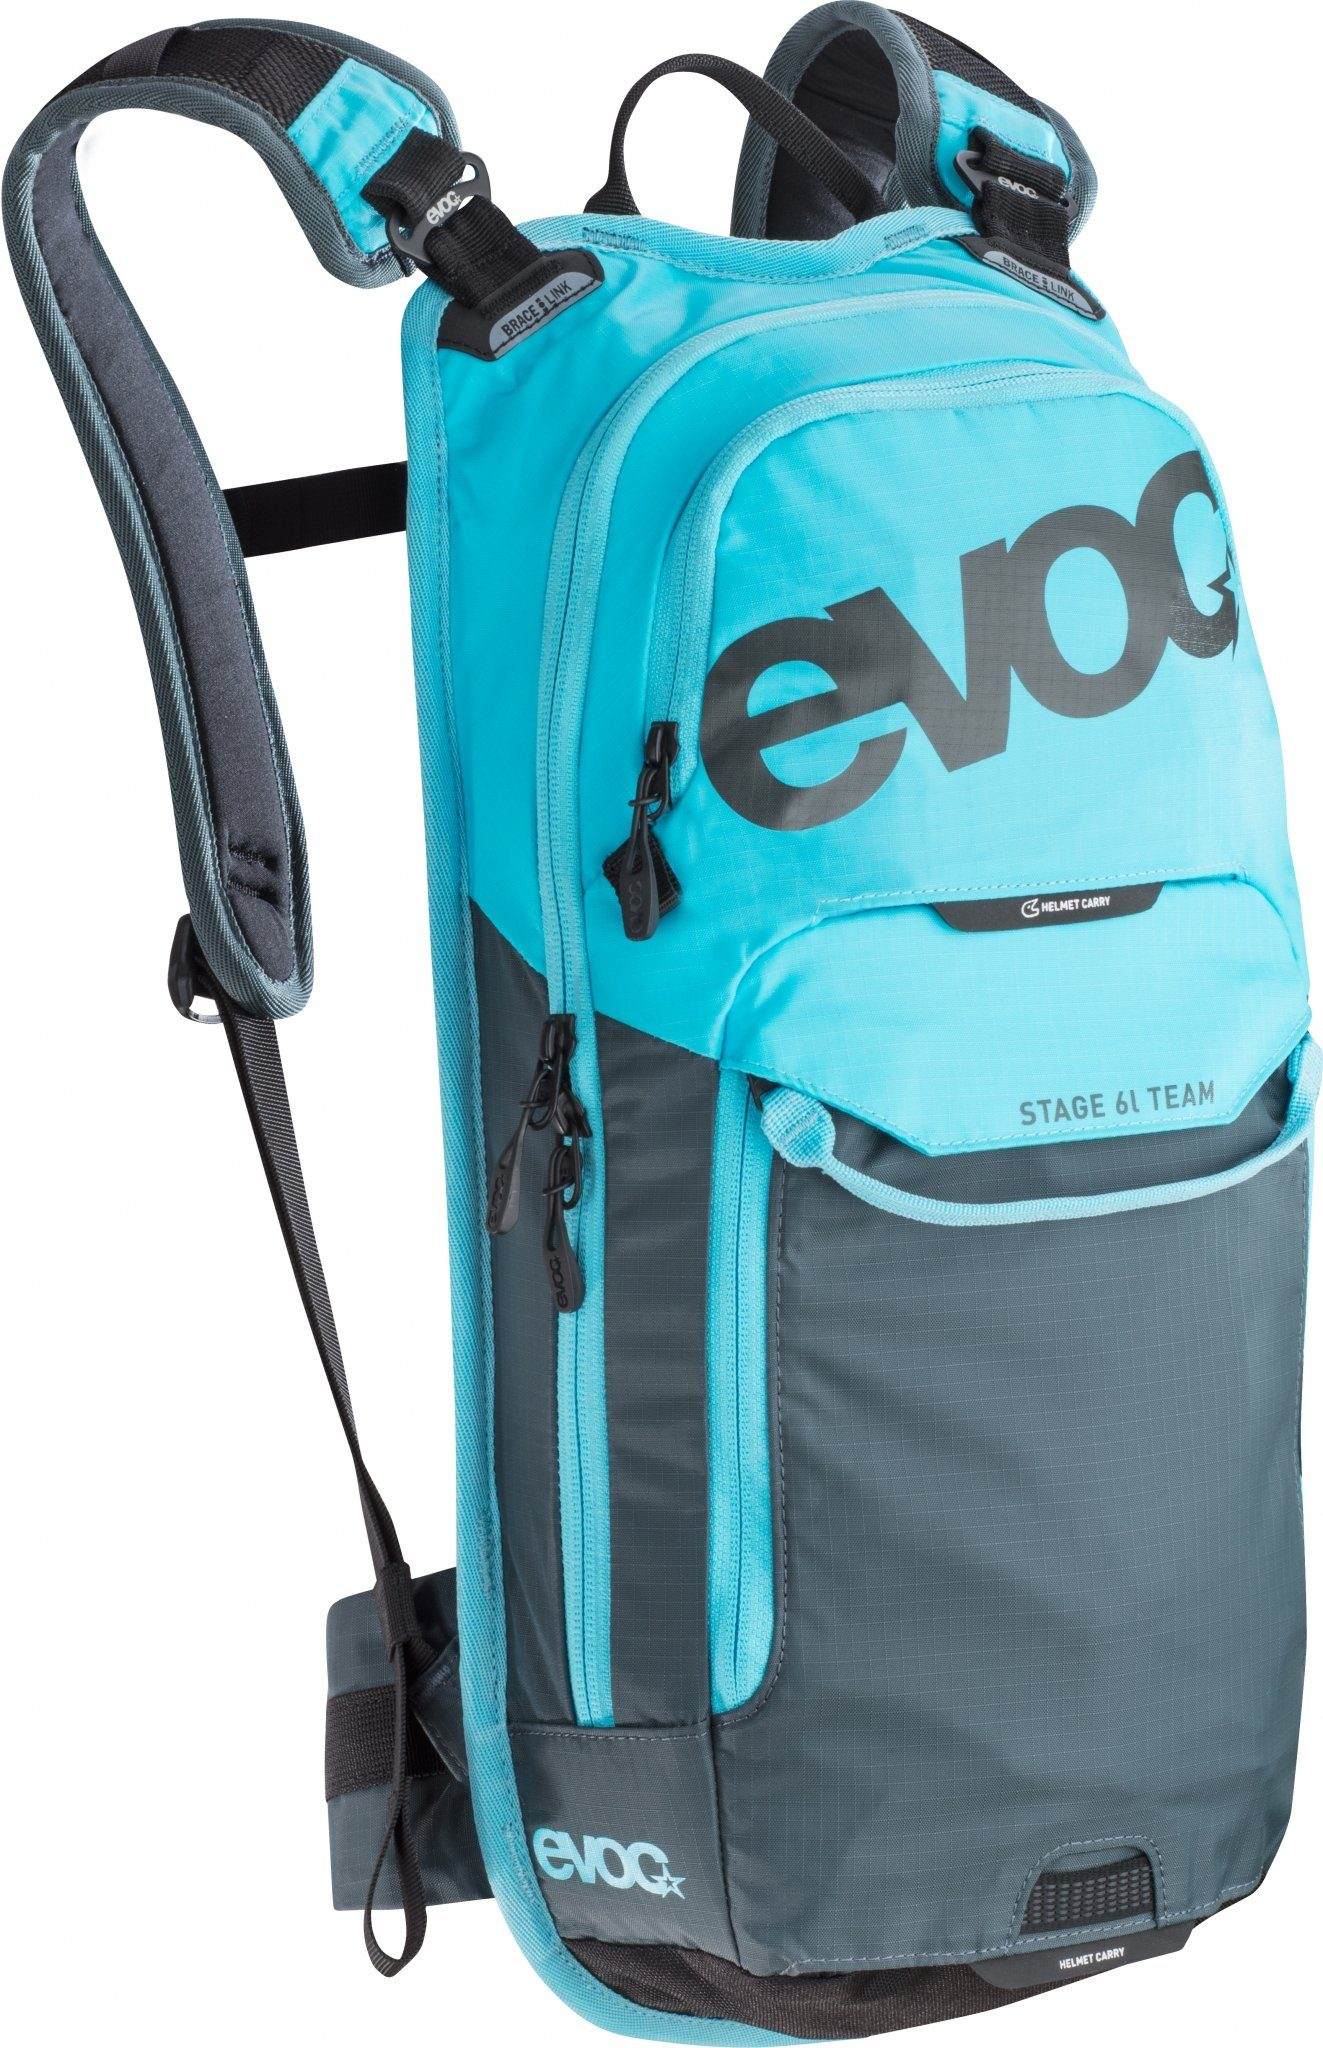 EVOC Rucksack »Stage Team Backpack 6 L + Hydration Bladder 2 L«